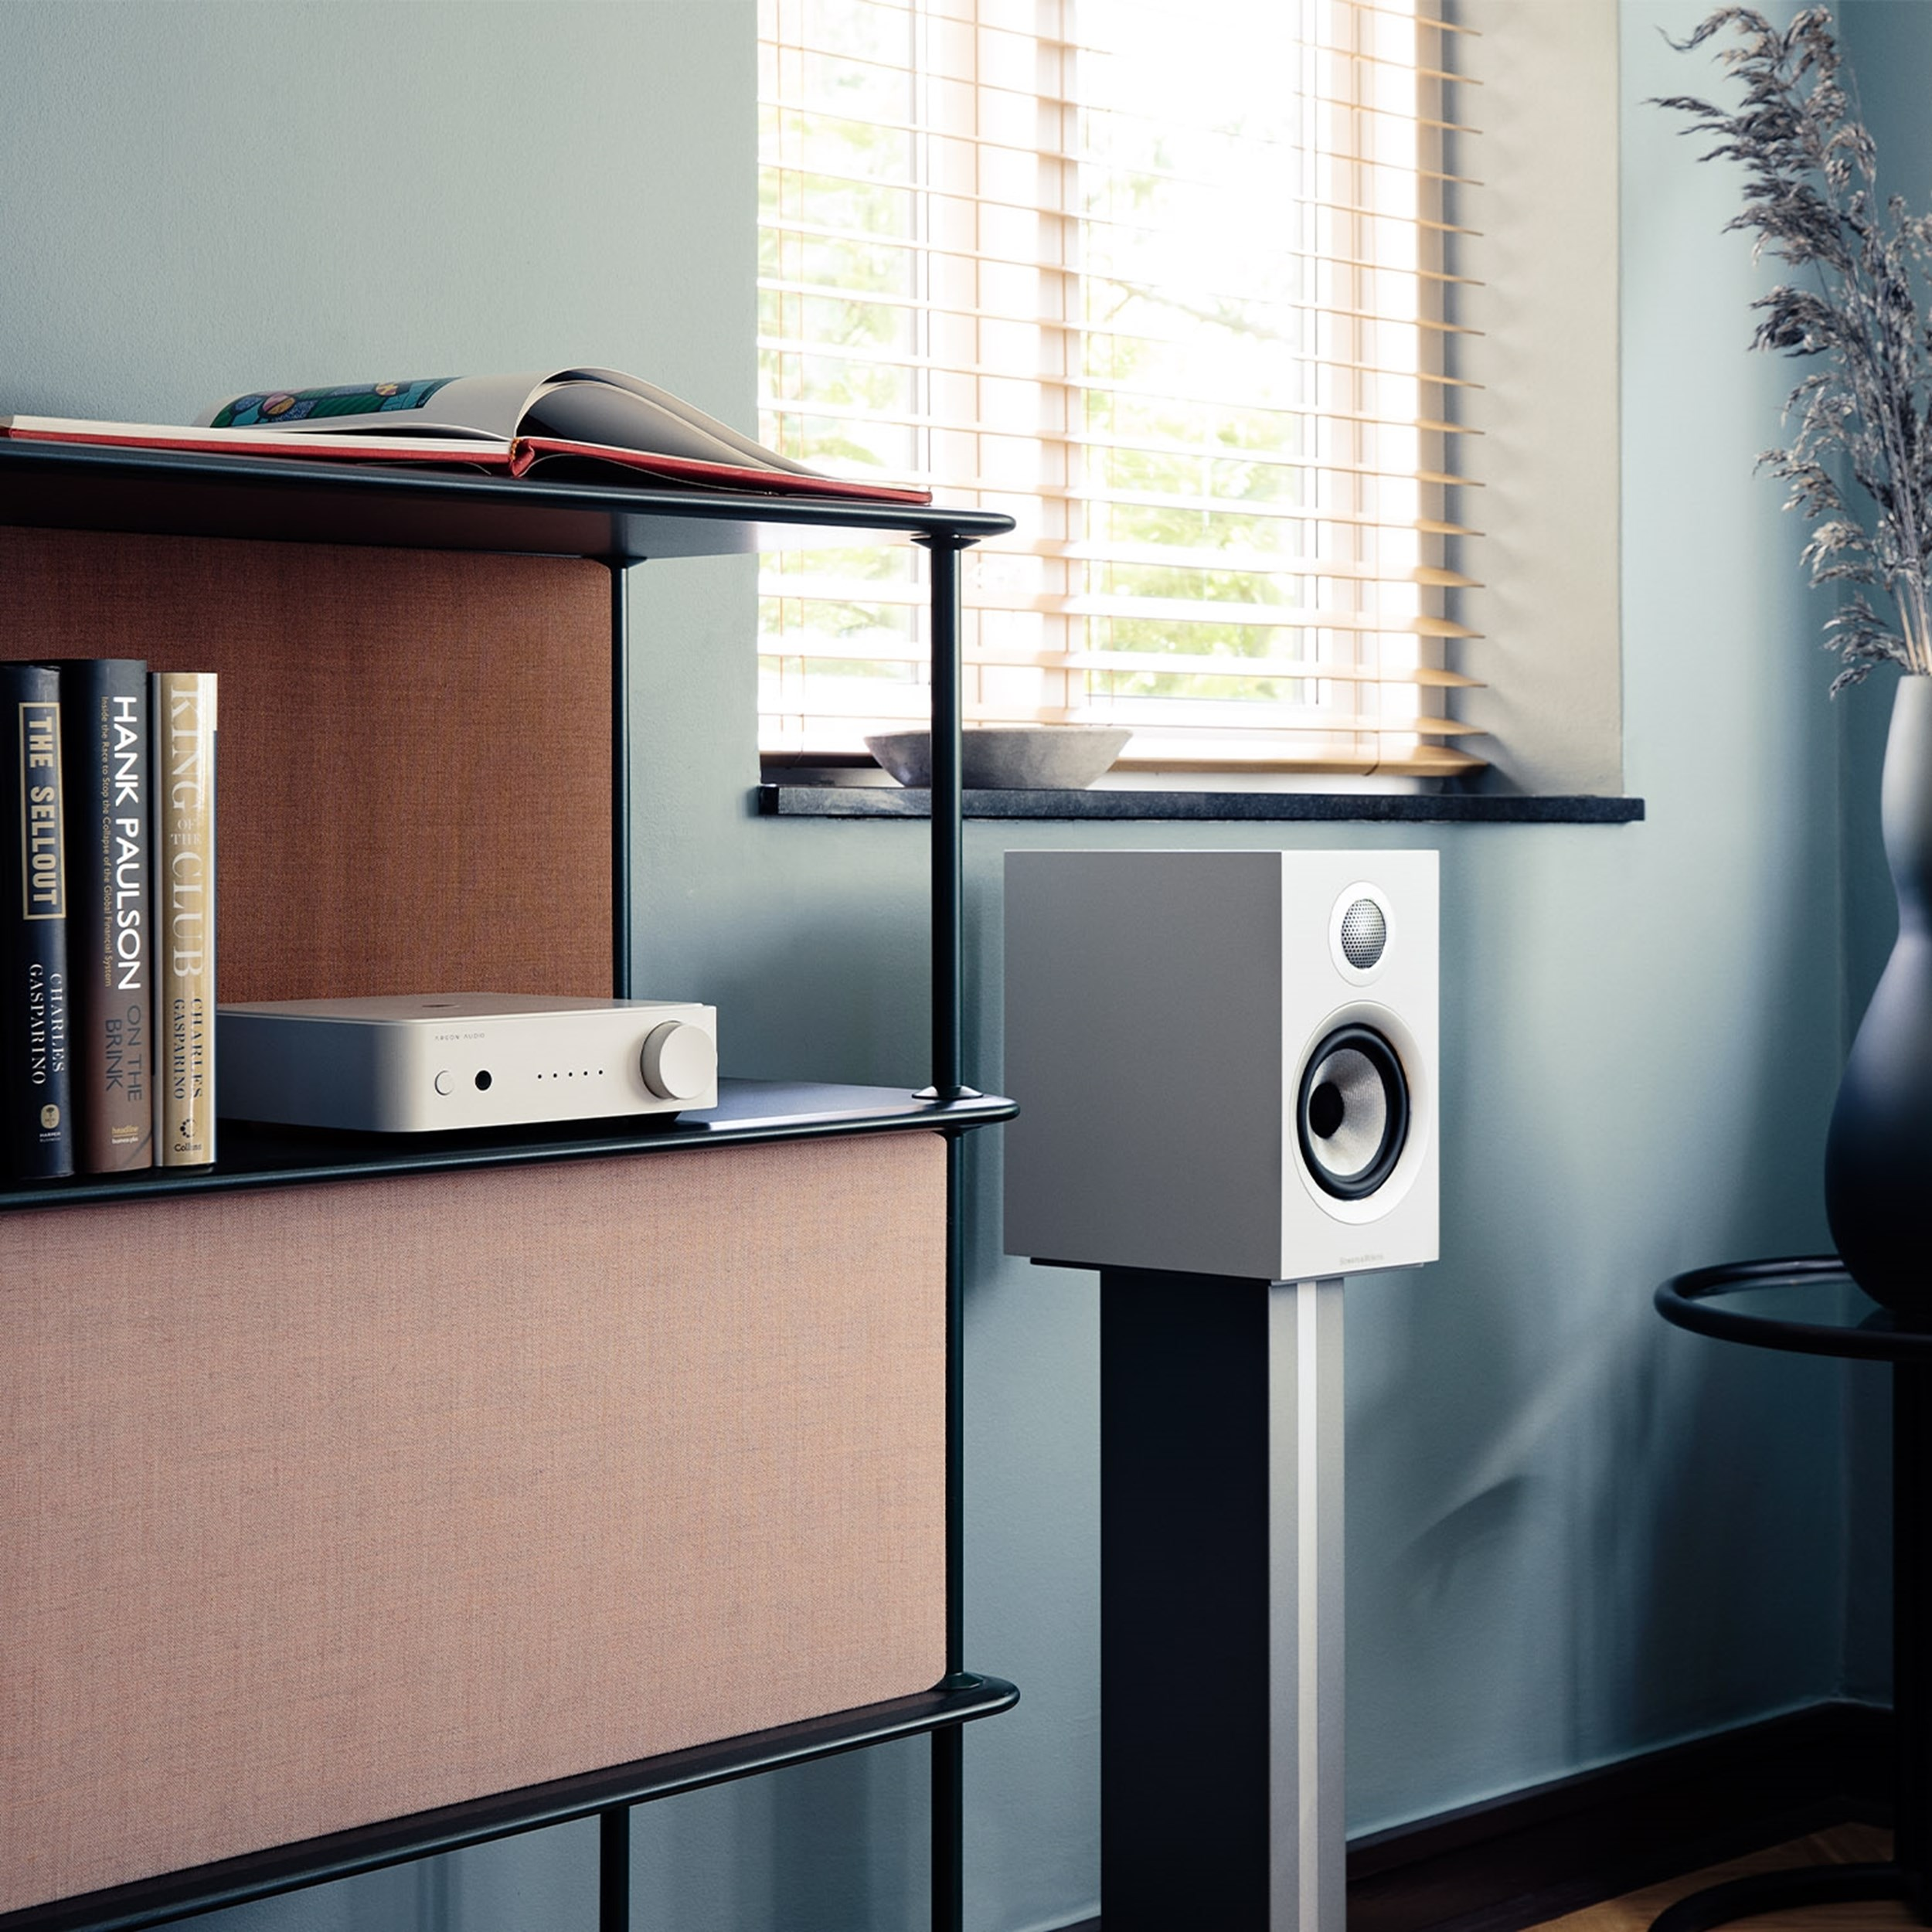 Argon Audio SA1 Versterker met Bluetooth